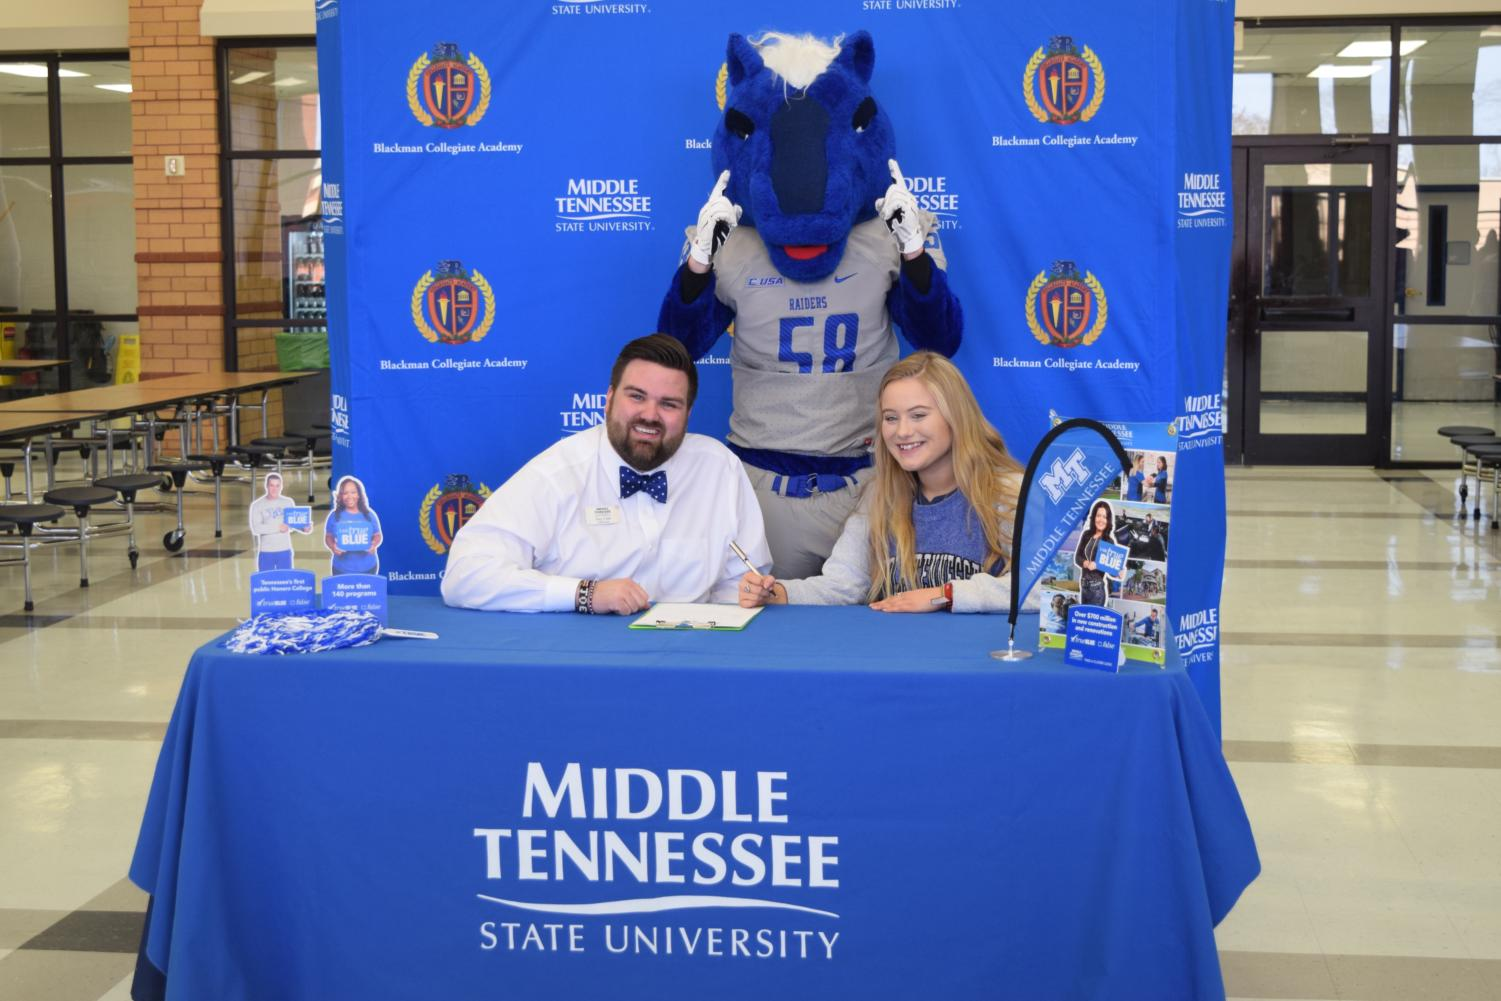 Haley+Perkins+will+attend++Middle+Tennessee+State+University+in+the+fall.